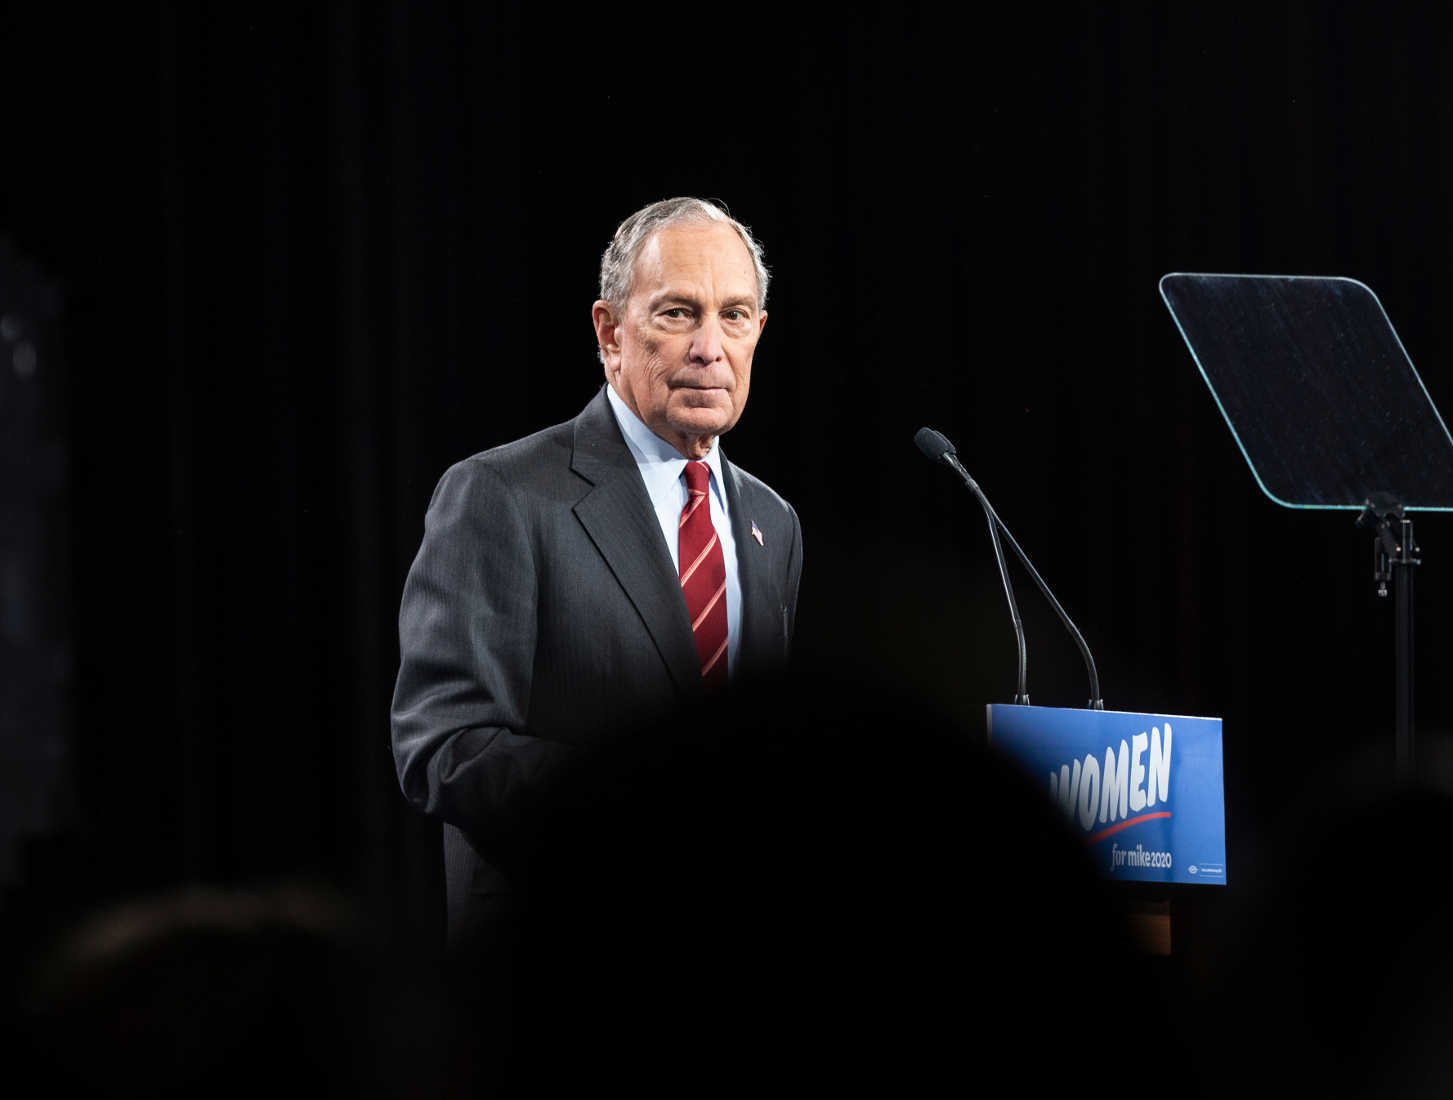 Bloomberg Group Urges Governors to Close Gun Stores, Despite Federal Order